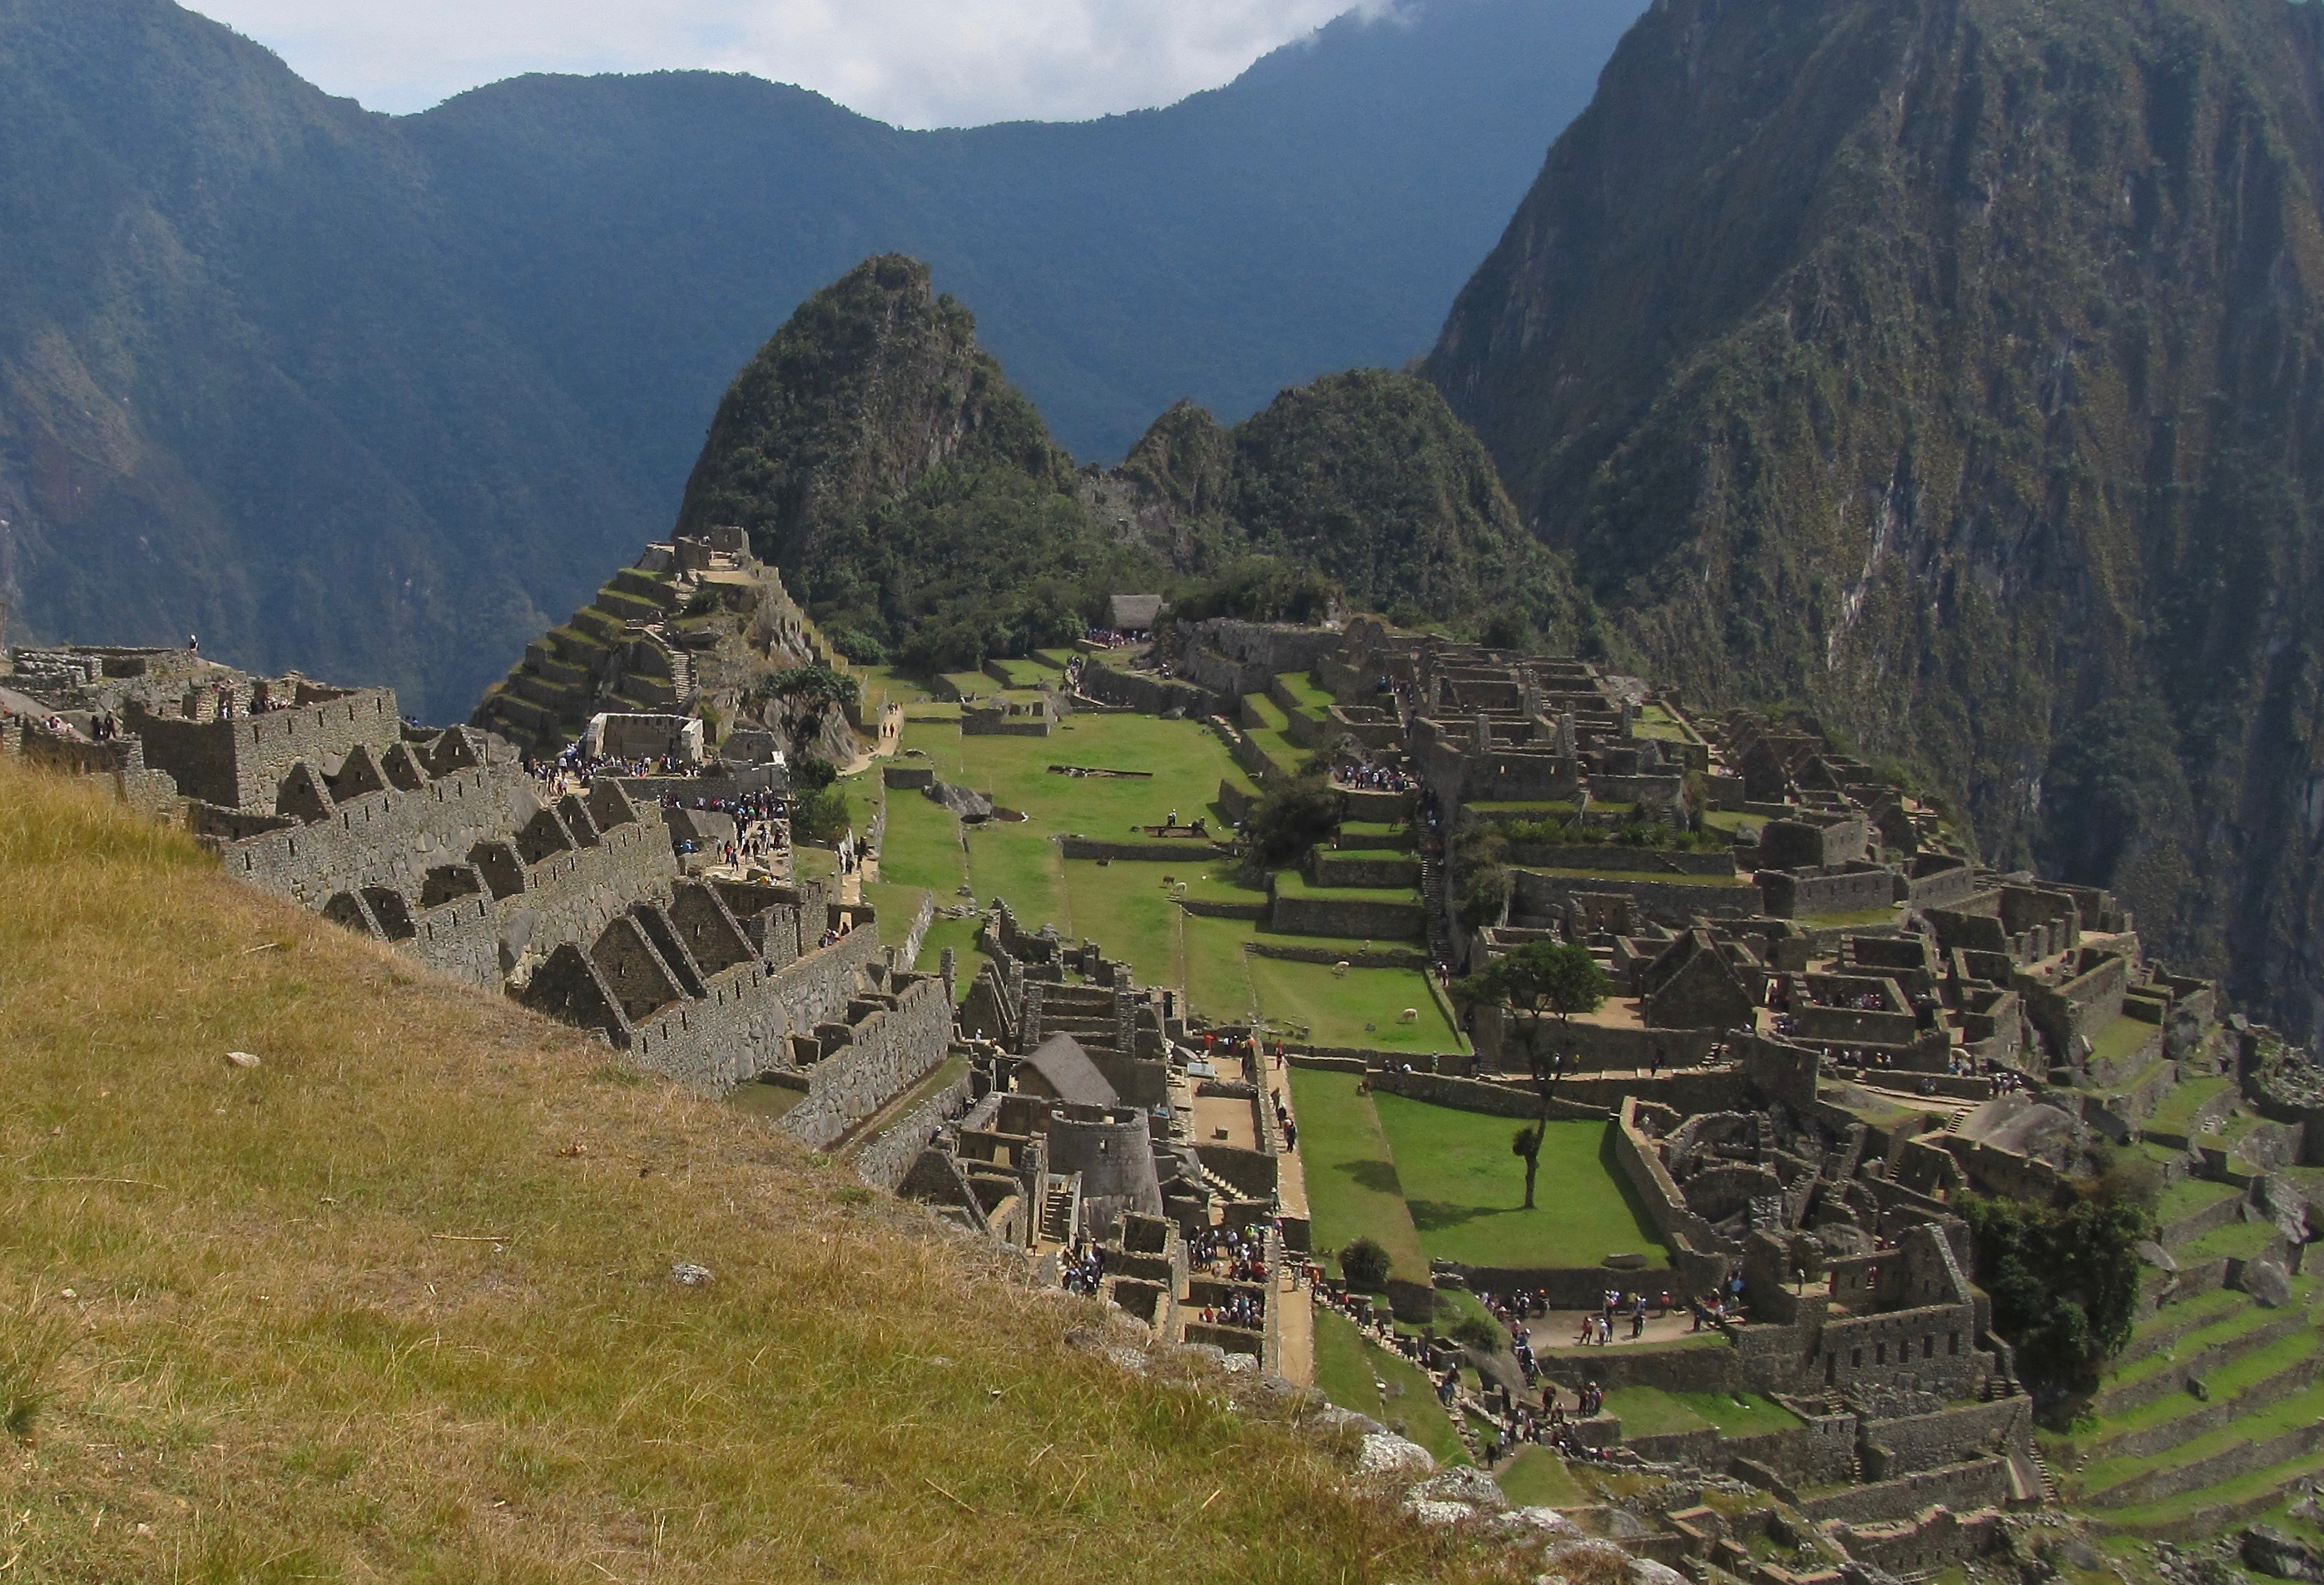 Machu Picchu was a secret location for the leaders and administrative hierarchy of the Inca ruling class.